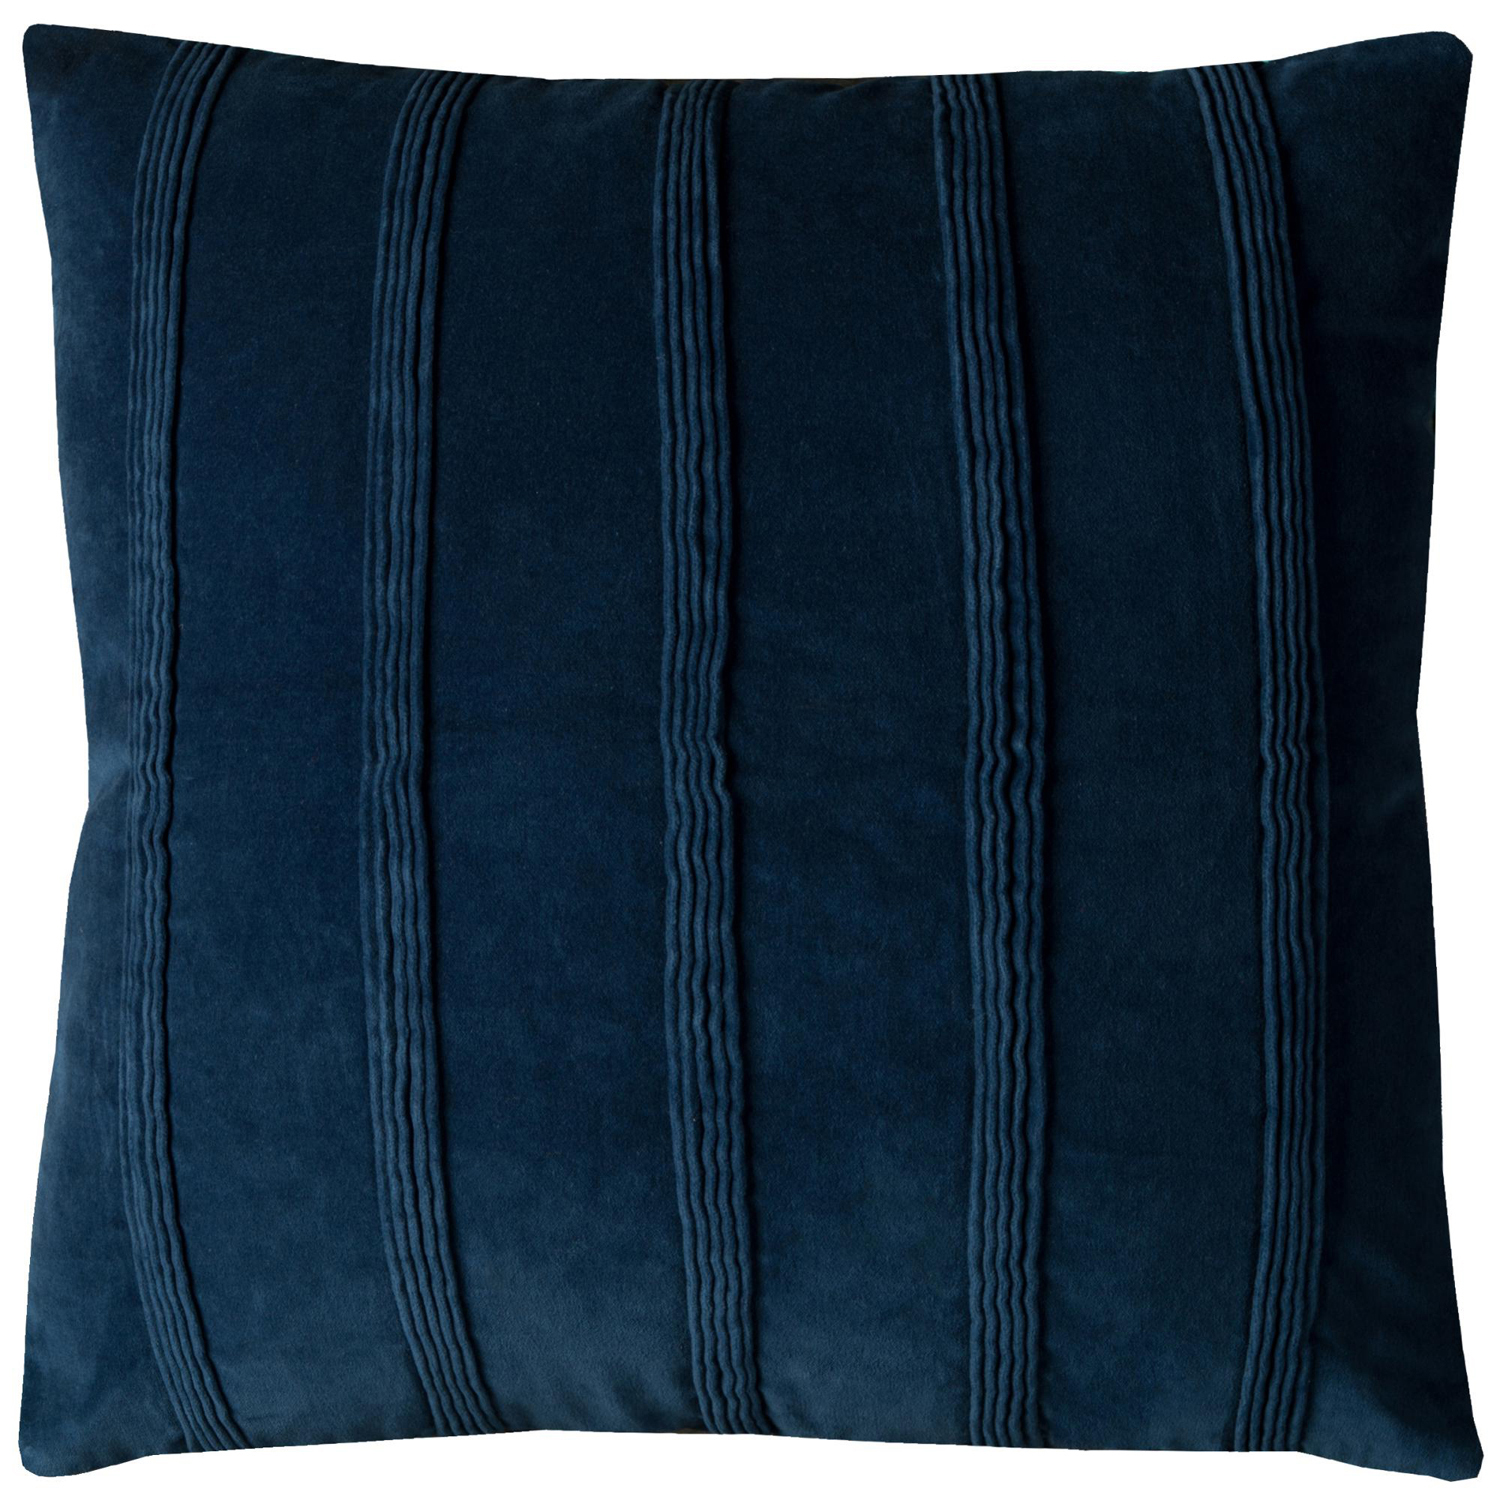 Solid Striped Navy Throw Pillow